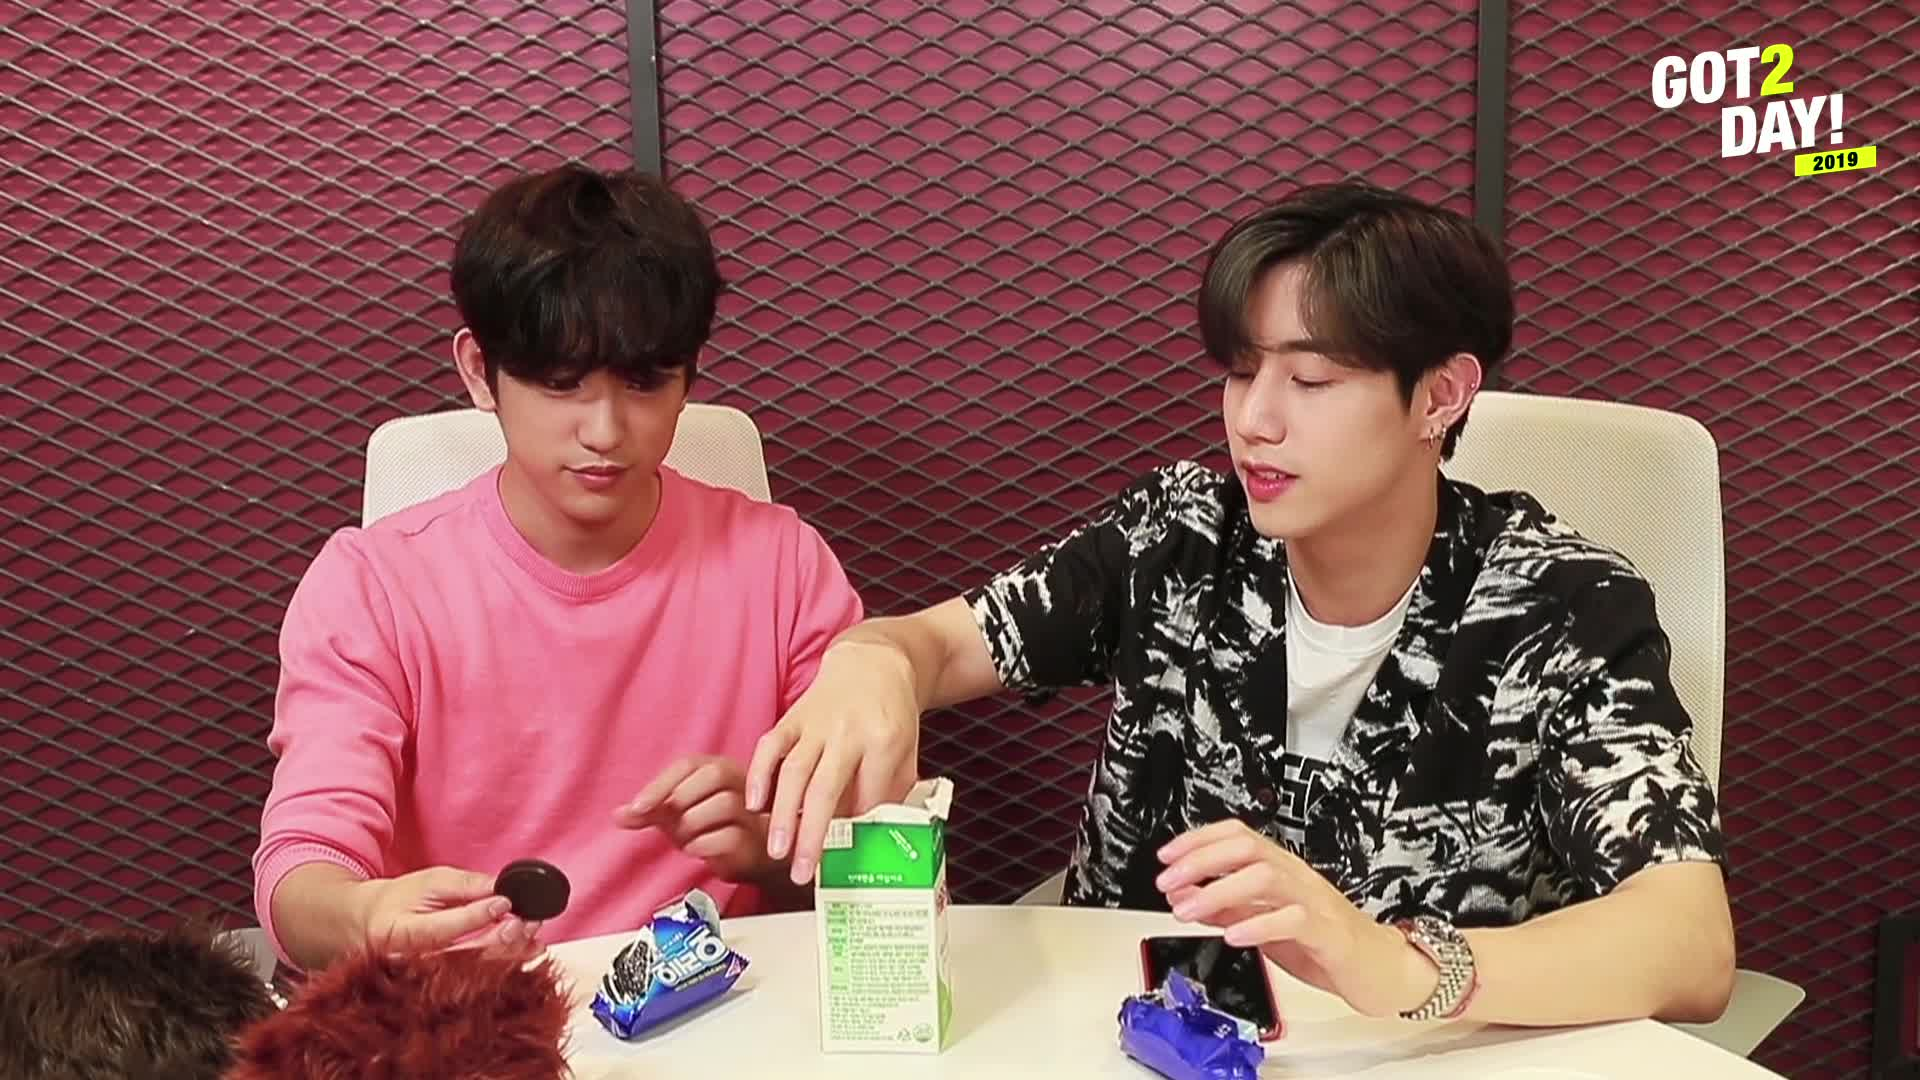 [GOT2DAY 2019] 10. Mark & Jinyoung